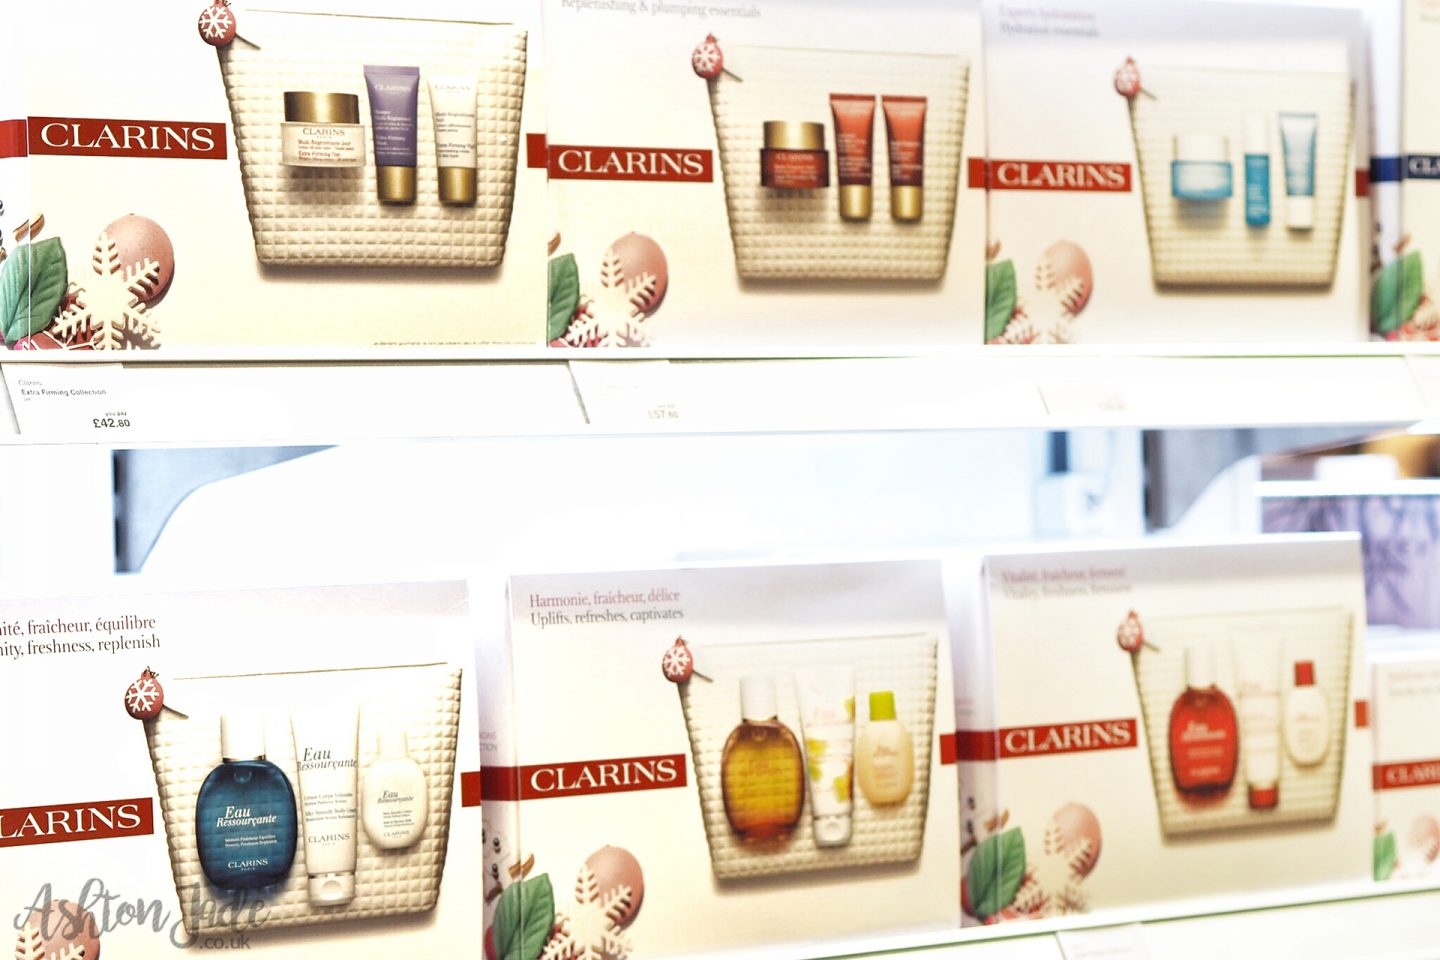 world-duty-free-clarins